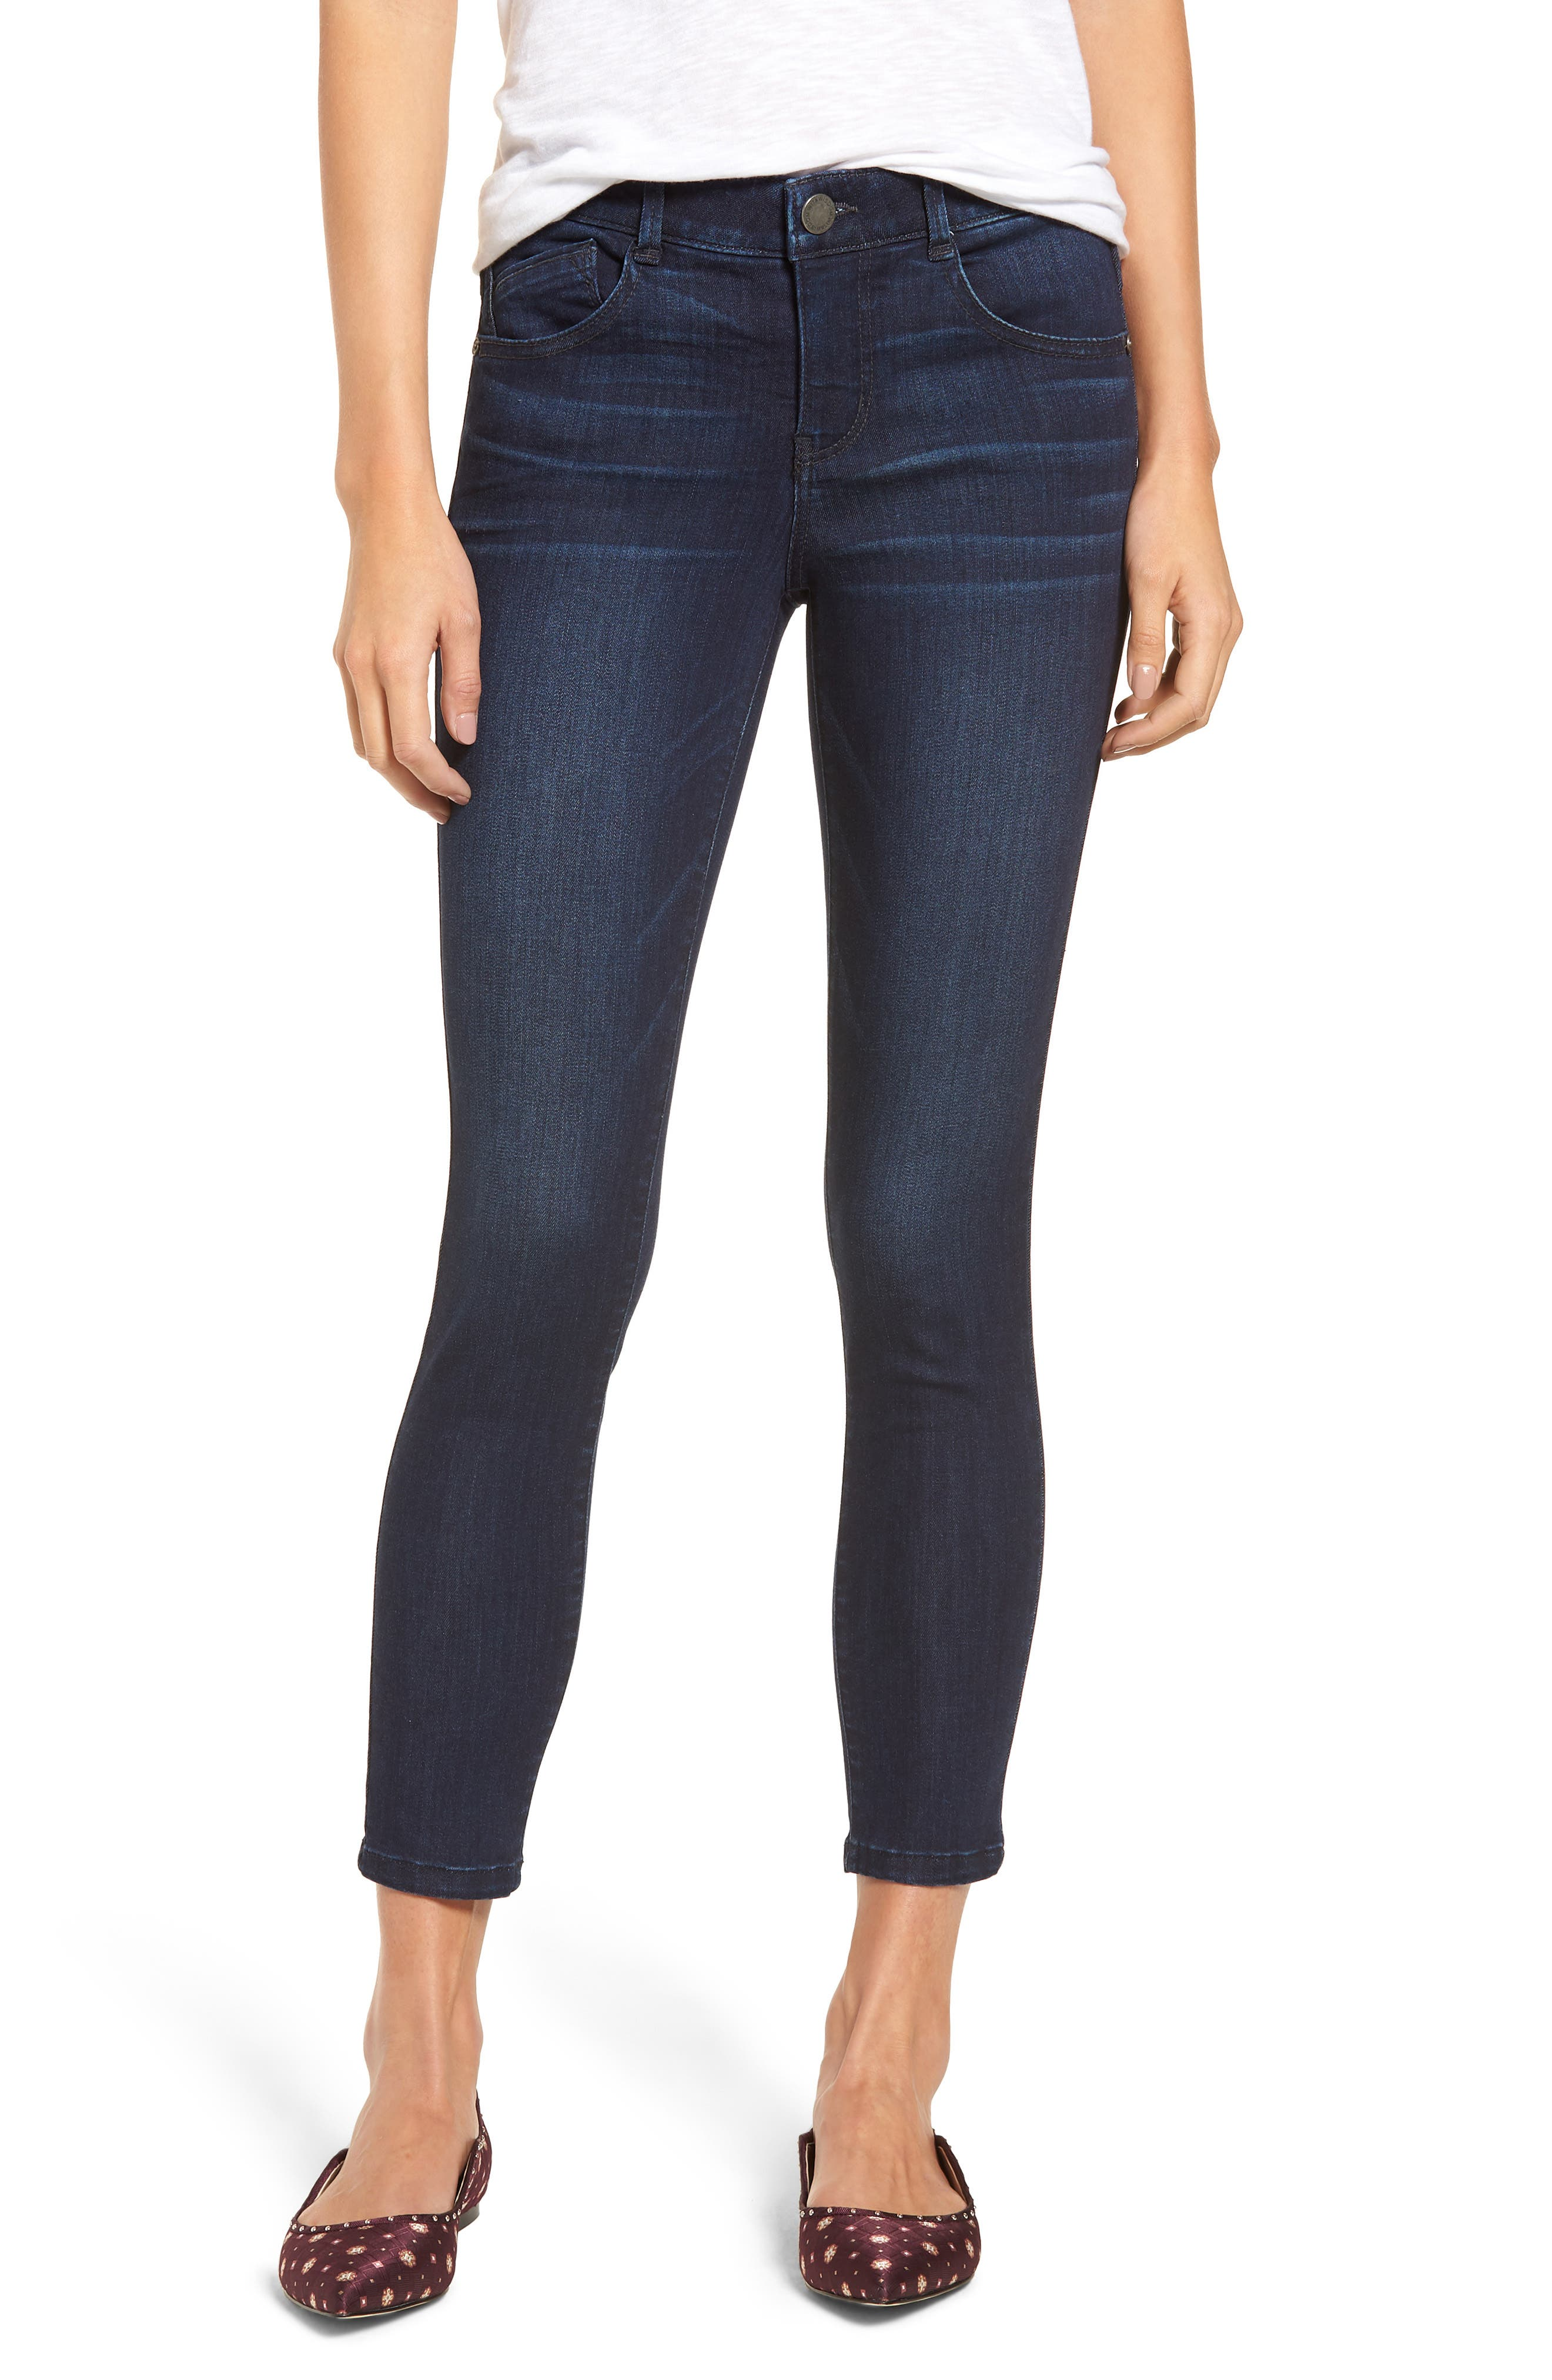 Ab-solution Skinny Jeans,                             Main thumbnail 1, color,                             In- Indigo